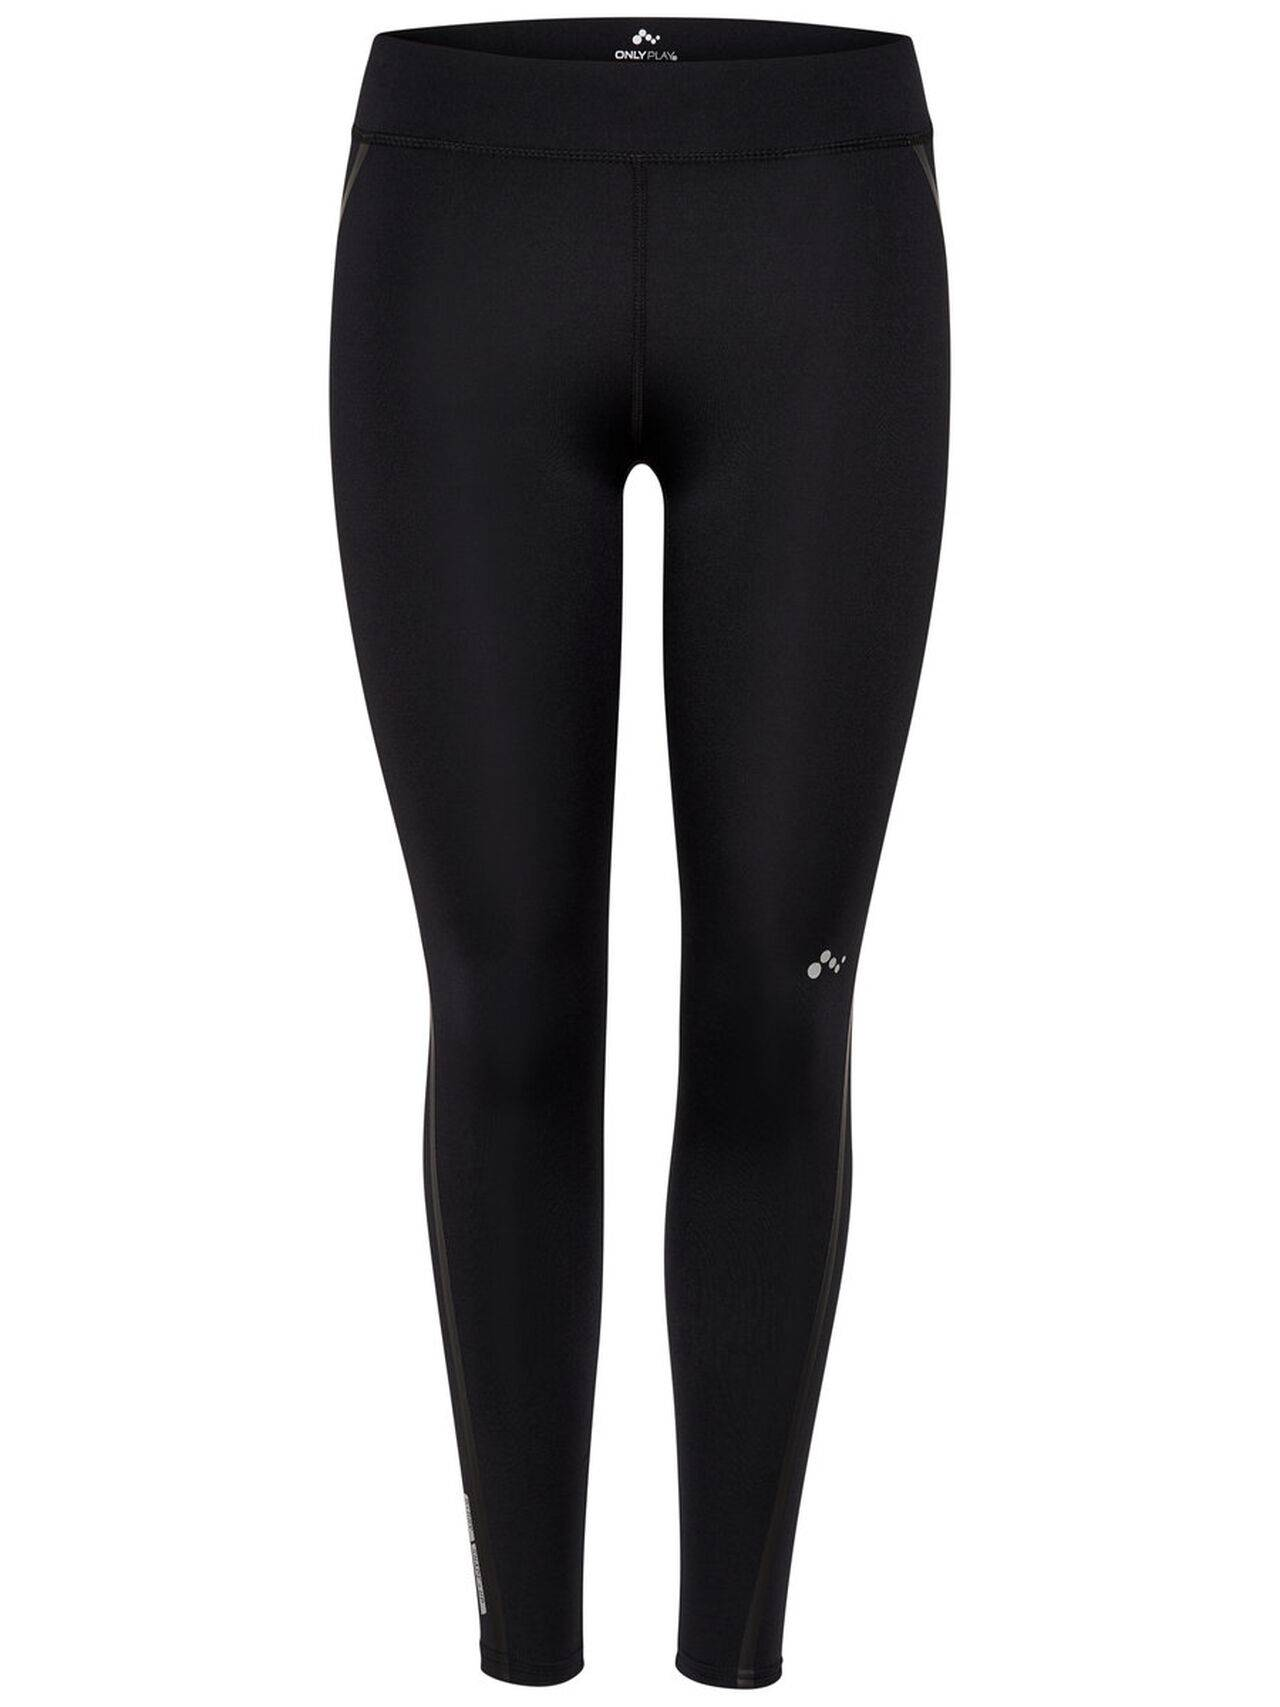 ONLY Shape Up Training Tights Women Black